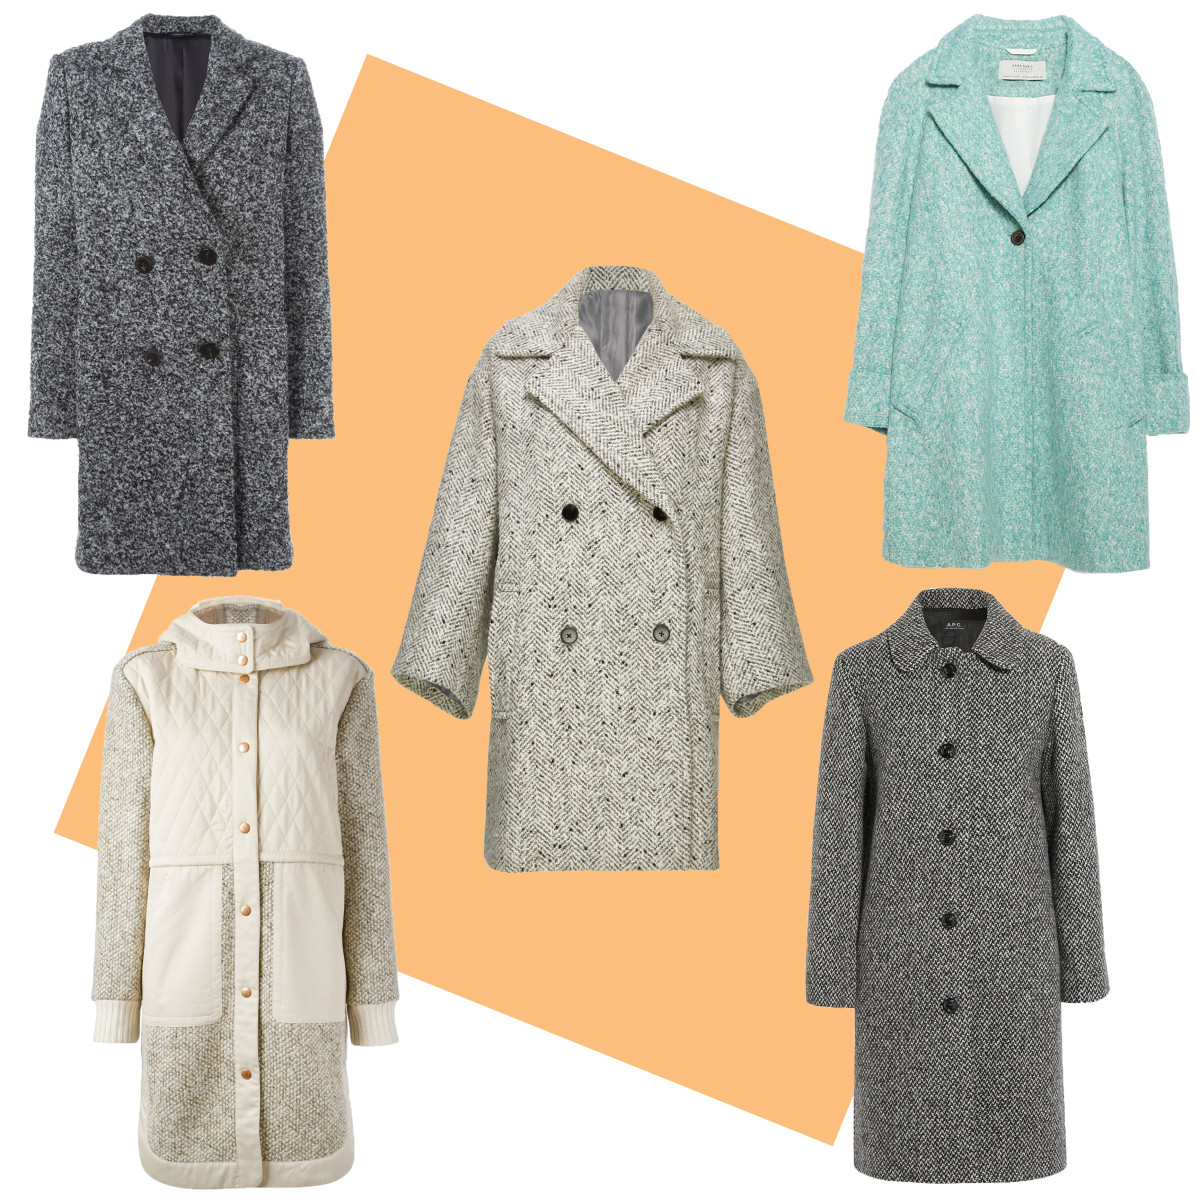 TOP LEFT: Tonella double breasted coat, $879.87, available at Farfetch; CENTER: Vince herringbone peacoat, $725, available at Vince; TOP RIGHT: Zara wool coat, $149, available at Zara; BOTTOM LEFT: See by Chloe paneled hooded coat, $886.20, available at Farfetch; BOTTOM RIGHT: A.P.C. peel wool-blend tweed coat, $575, available at Net-a-Porter.